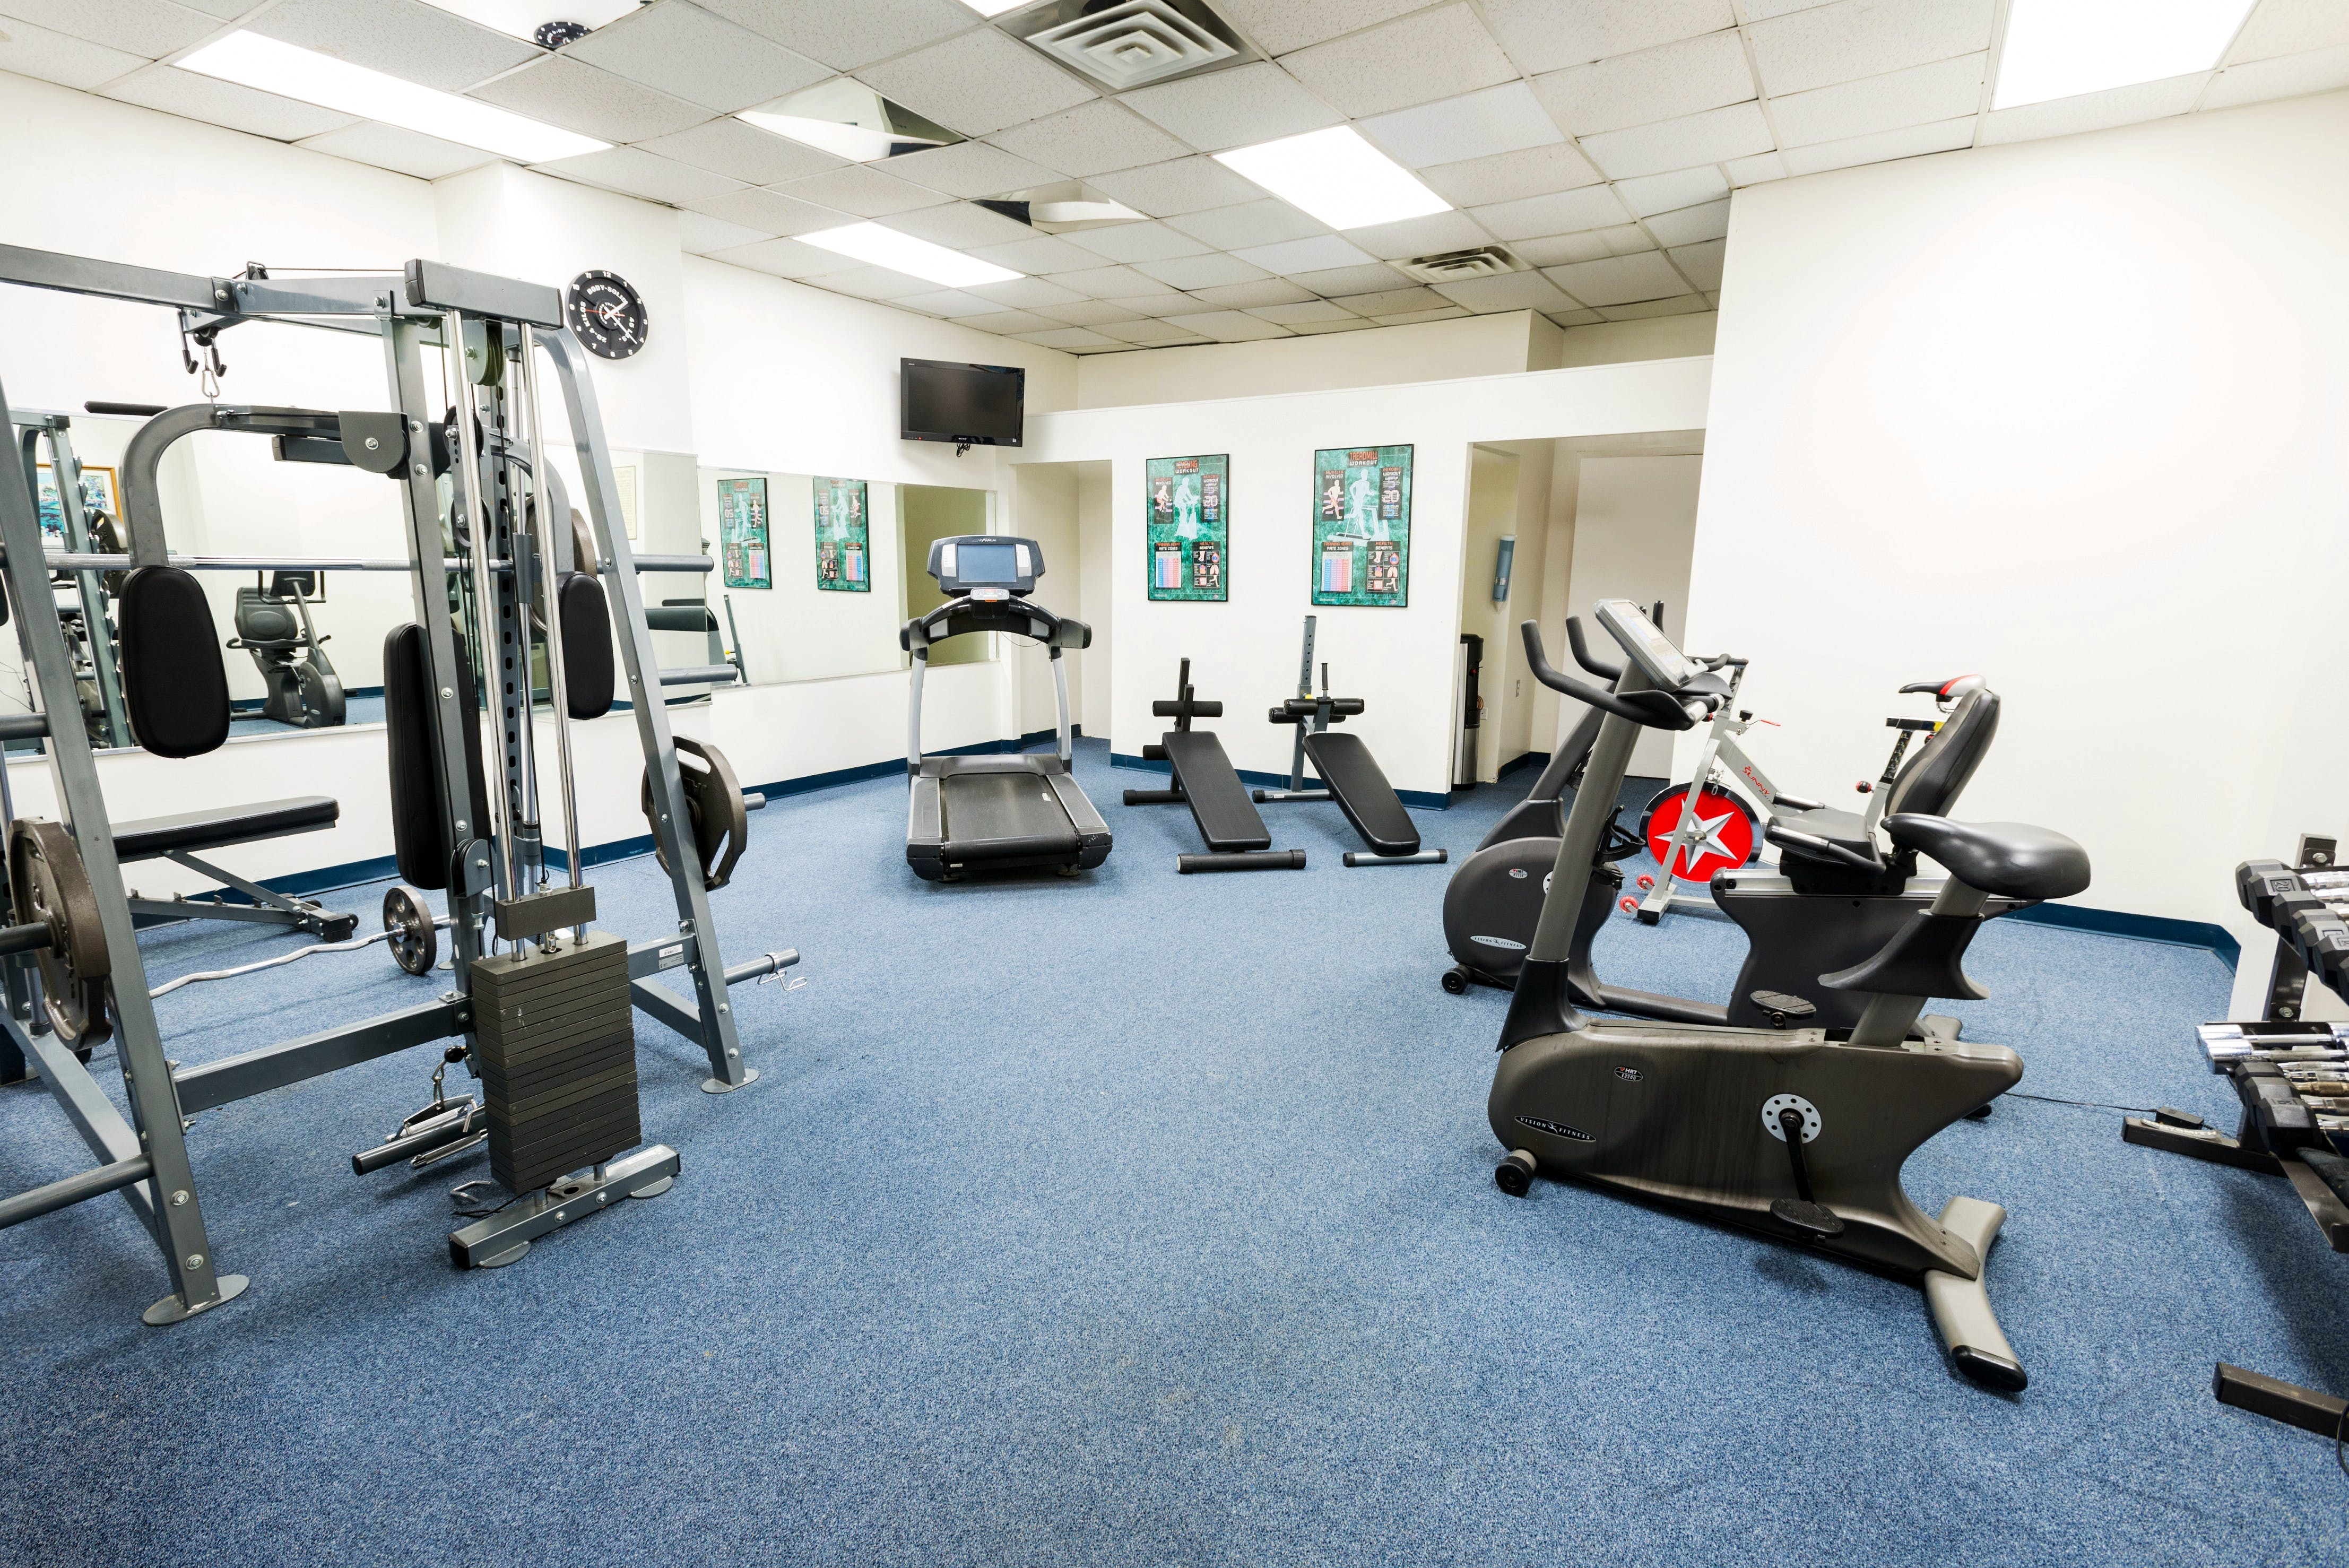 The Roslyn Hotel fitness center.